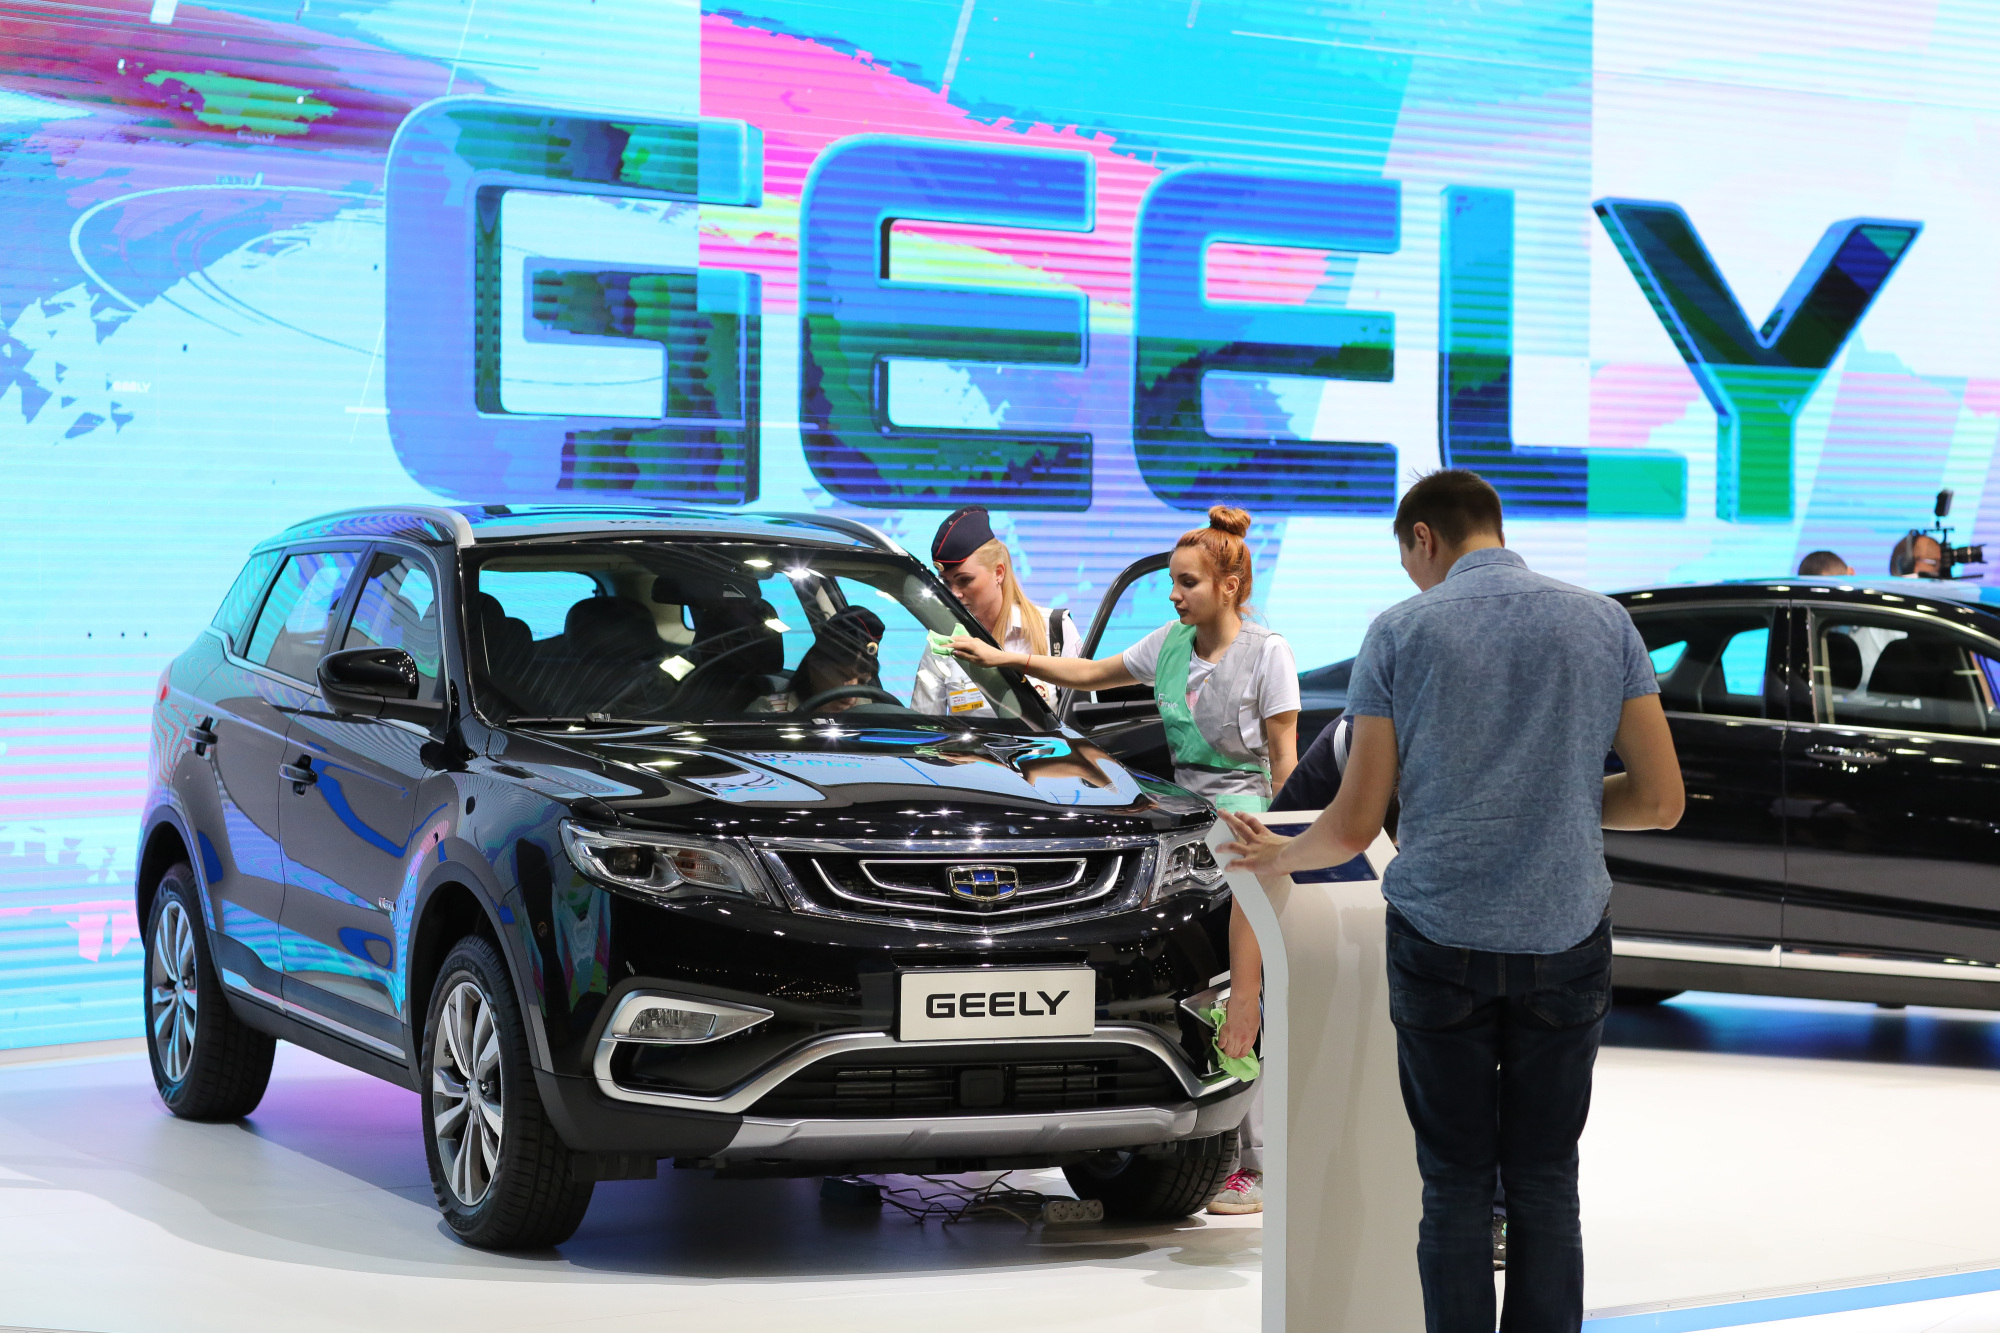 A Geely NL-3, manufactured by Geely Automobile Holdings, is displayed at the Moscow International Automobile Salon in 2016. | BLOOMBERG